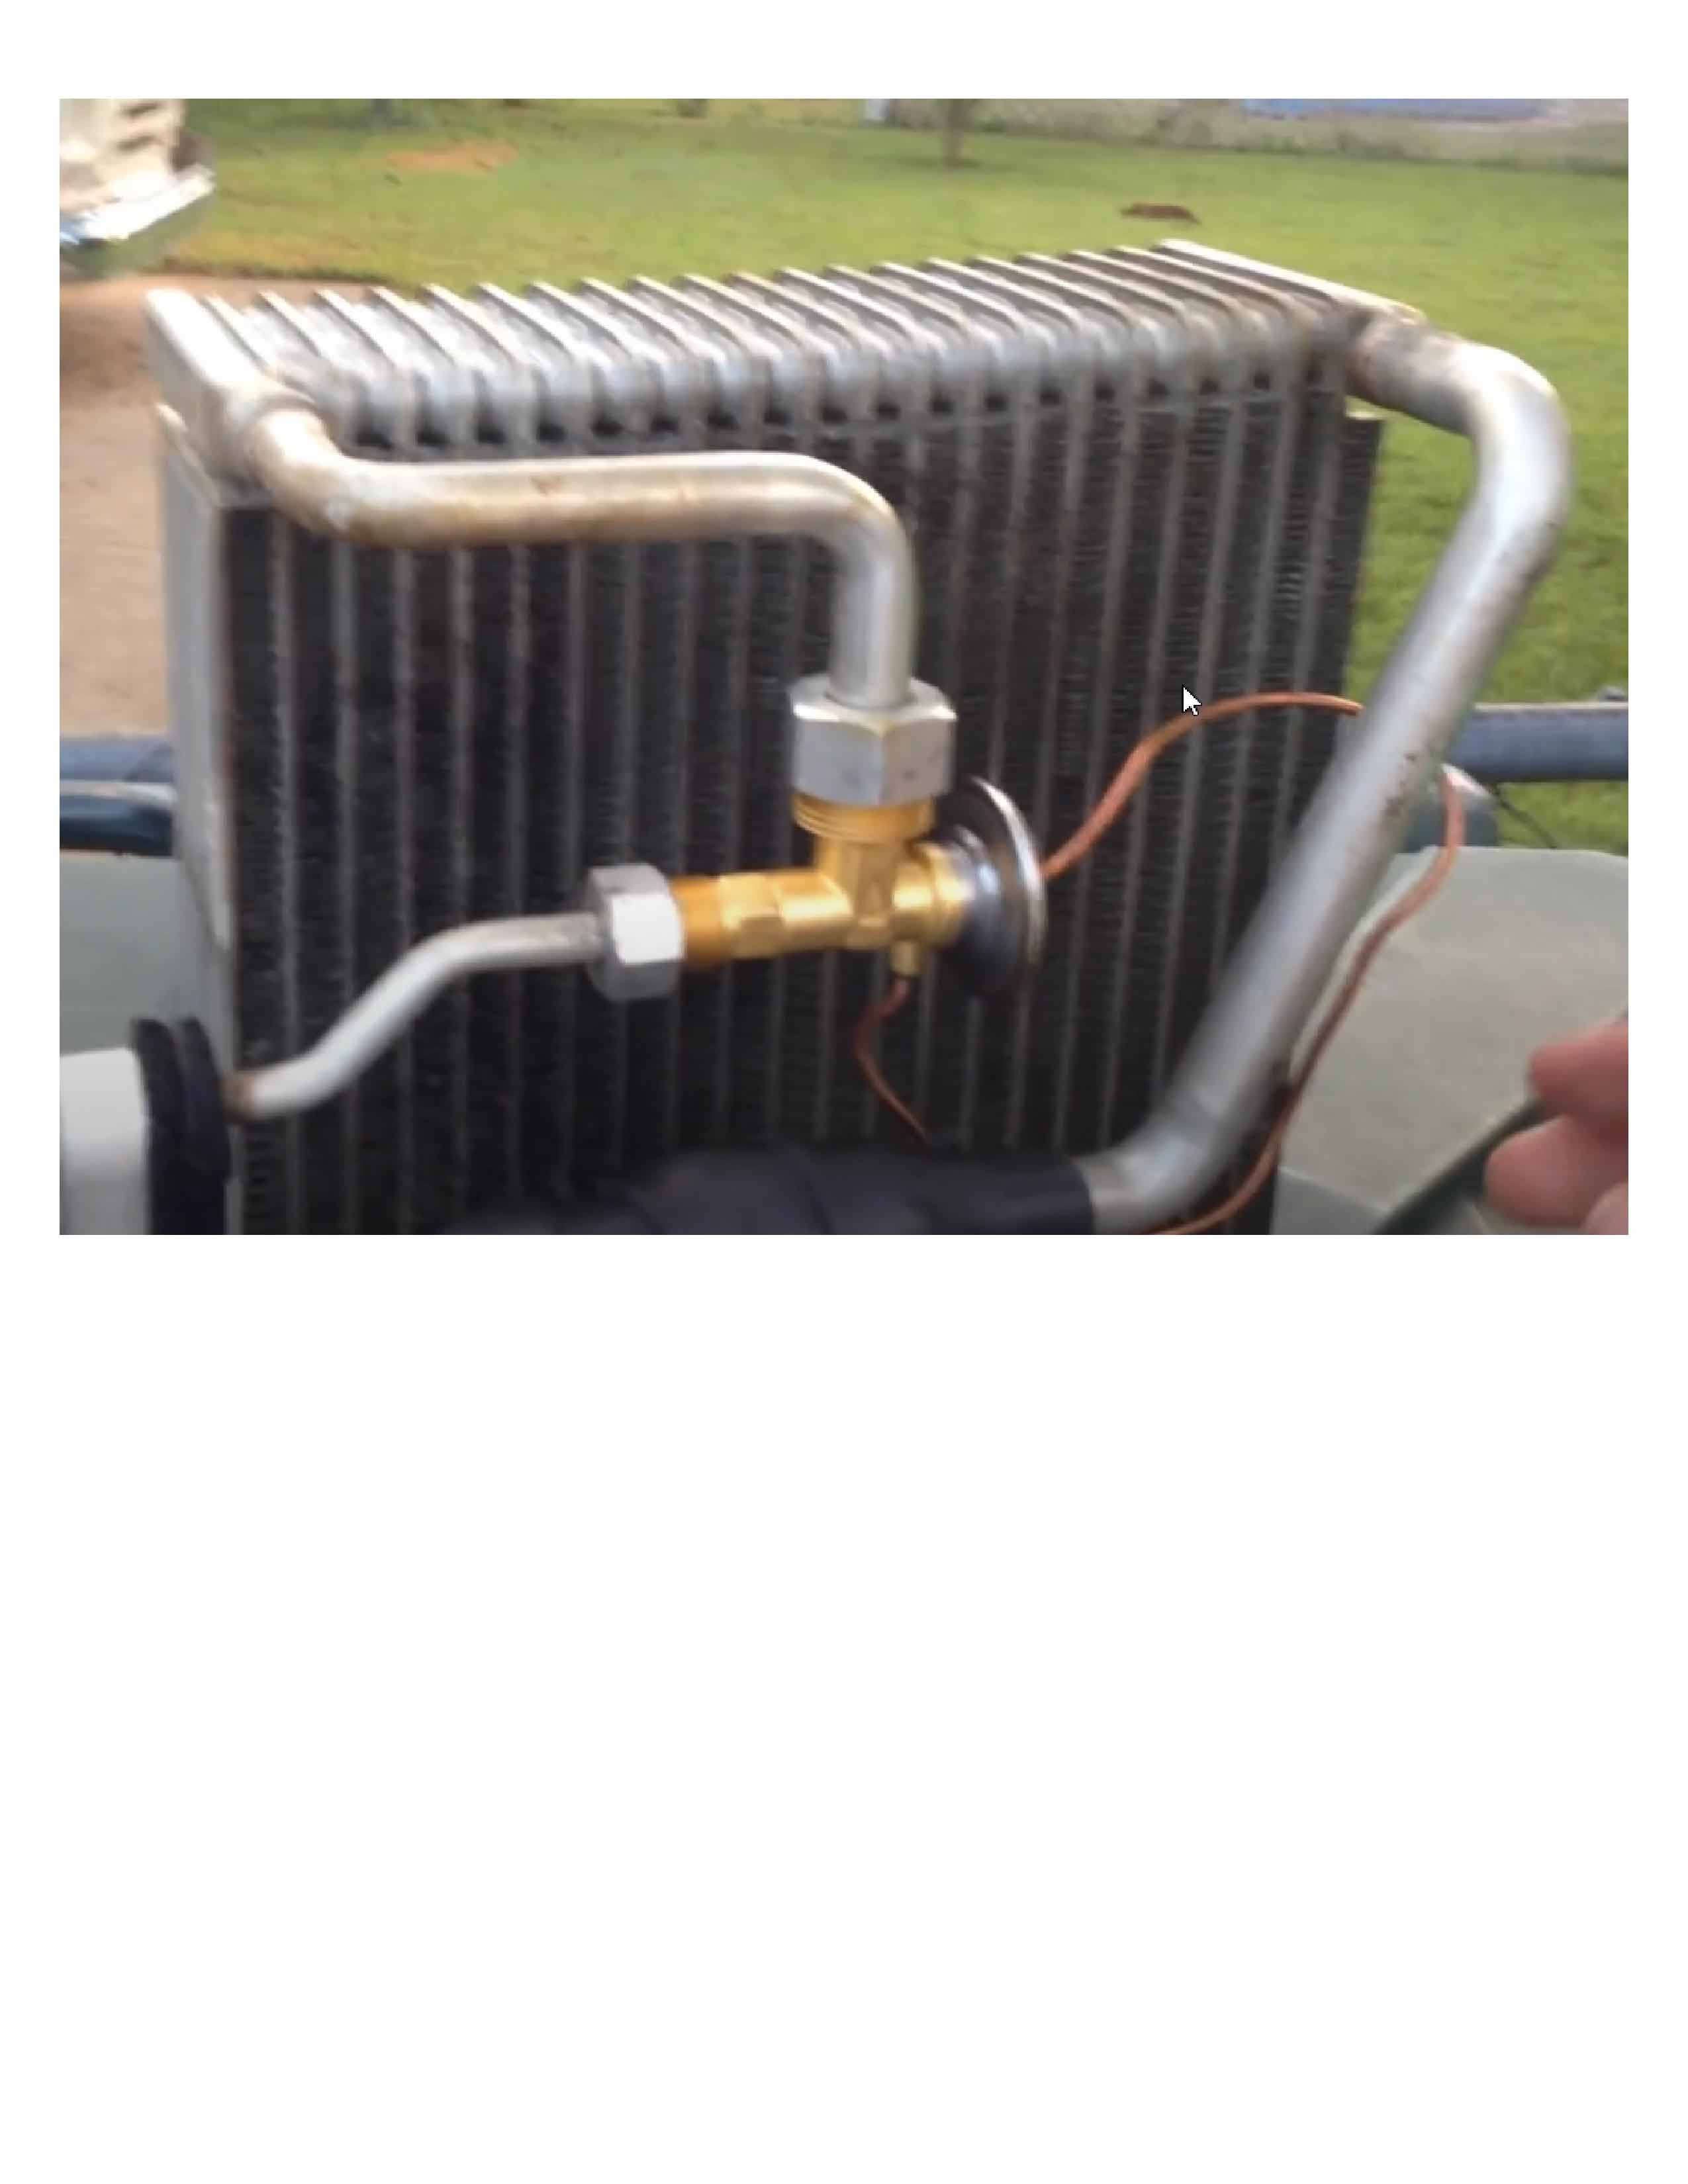 Photo 1 - Evaporators and TXV from 2000 Civic_edited-2.jpg